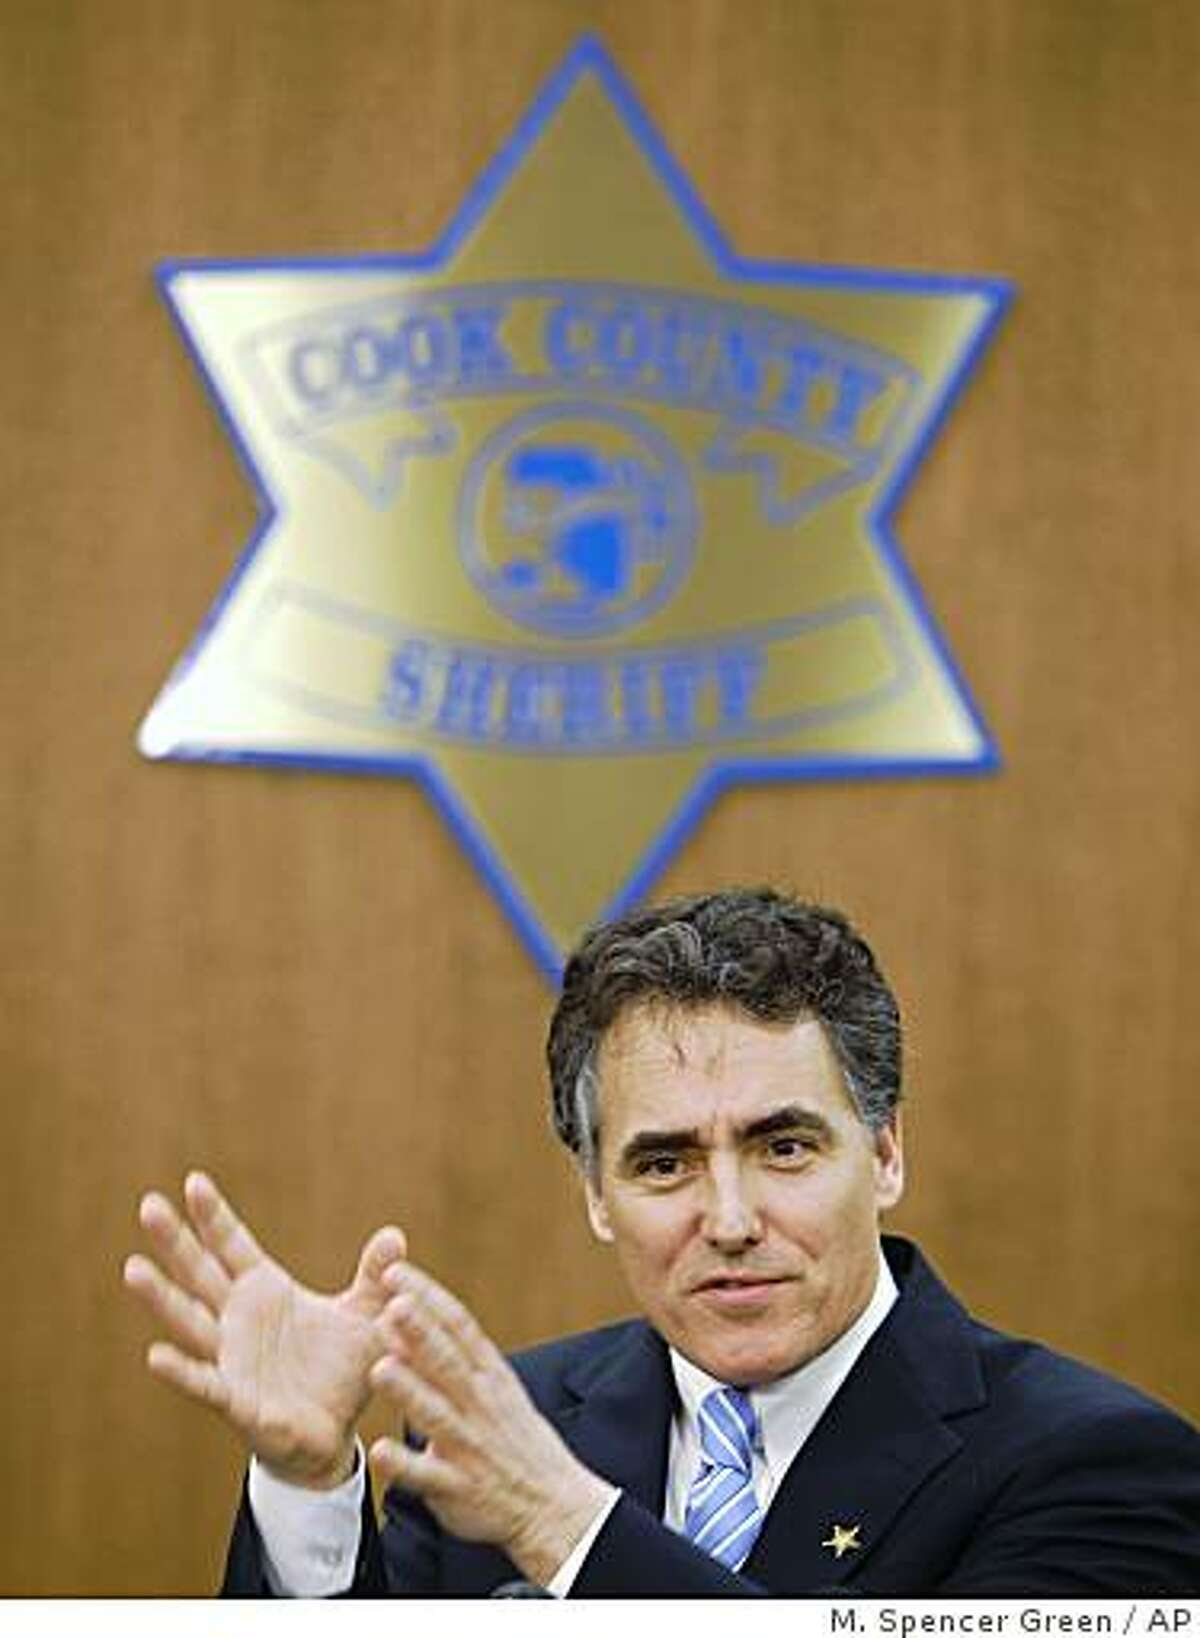 Cook County Sheriff Tom Dart announces at a news conference that he has filed suit in U.S. District Court against the owner of the website, Craigslist, accusing them of knowingly promoting and facilitating prostitution. Thursday, March 5, 2009, in Chicago. (AP Photo/M. Spencer Green)